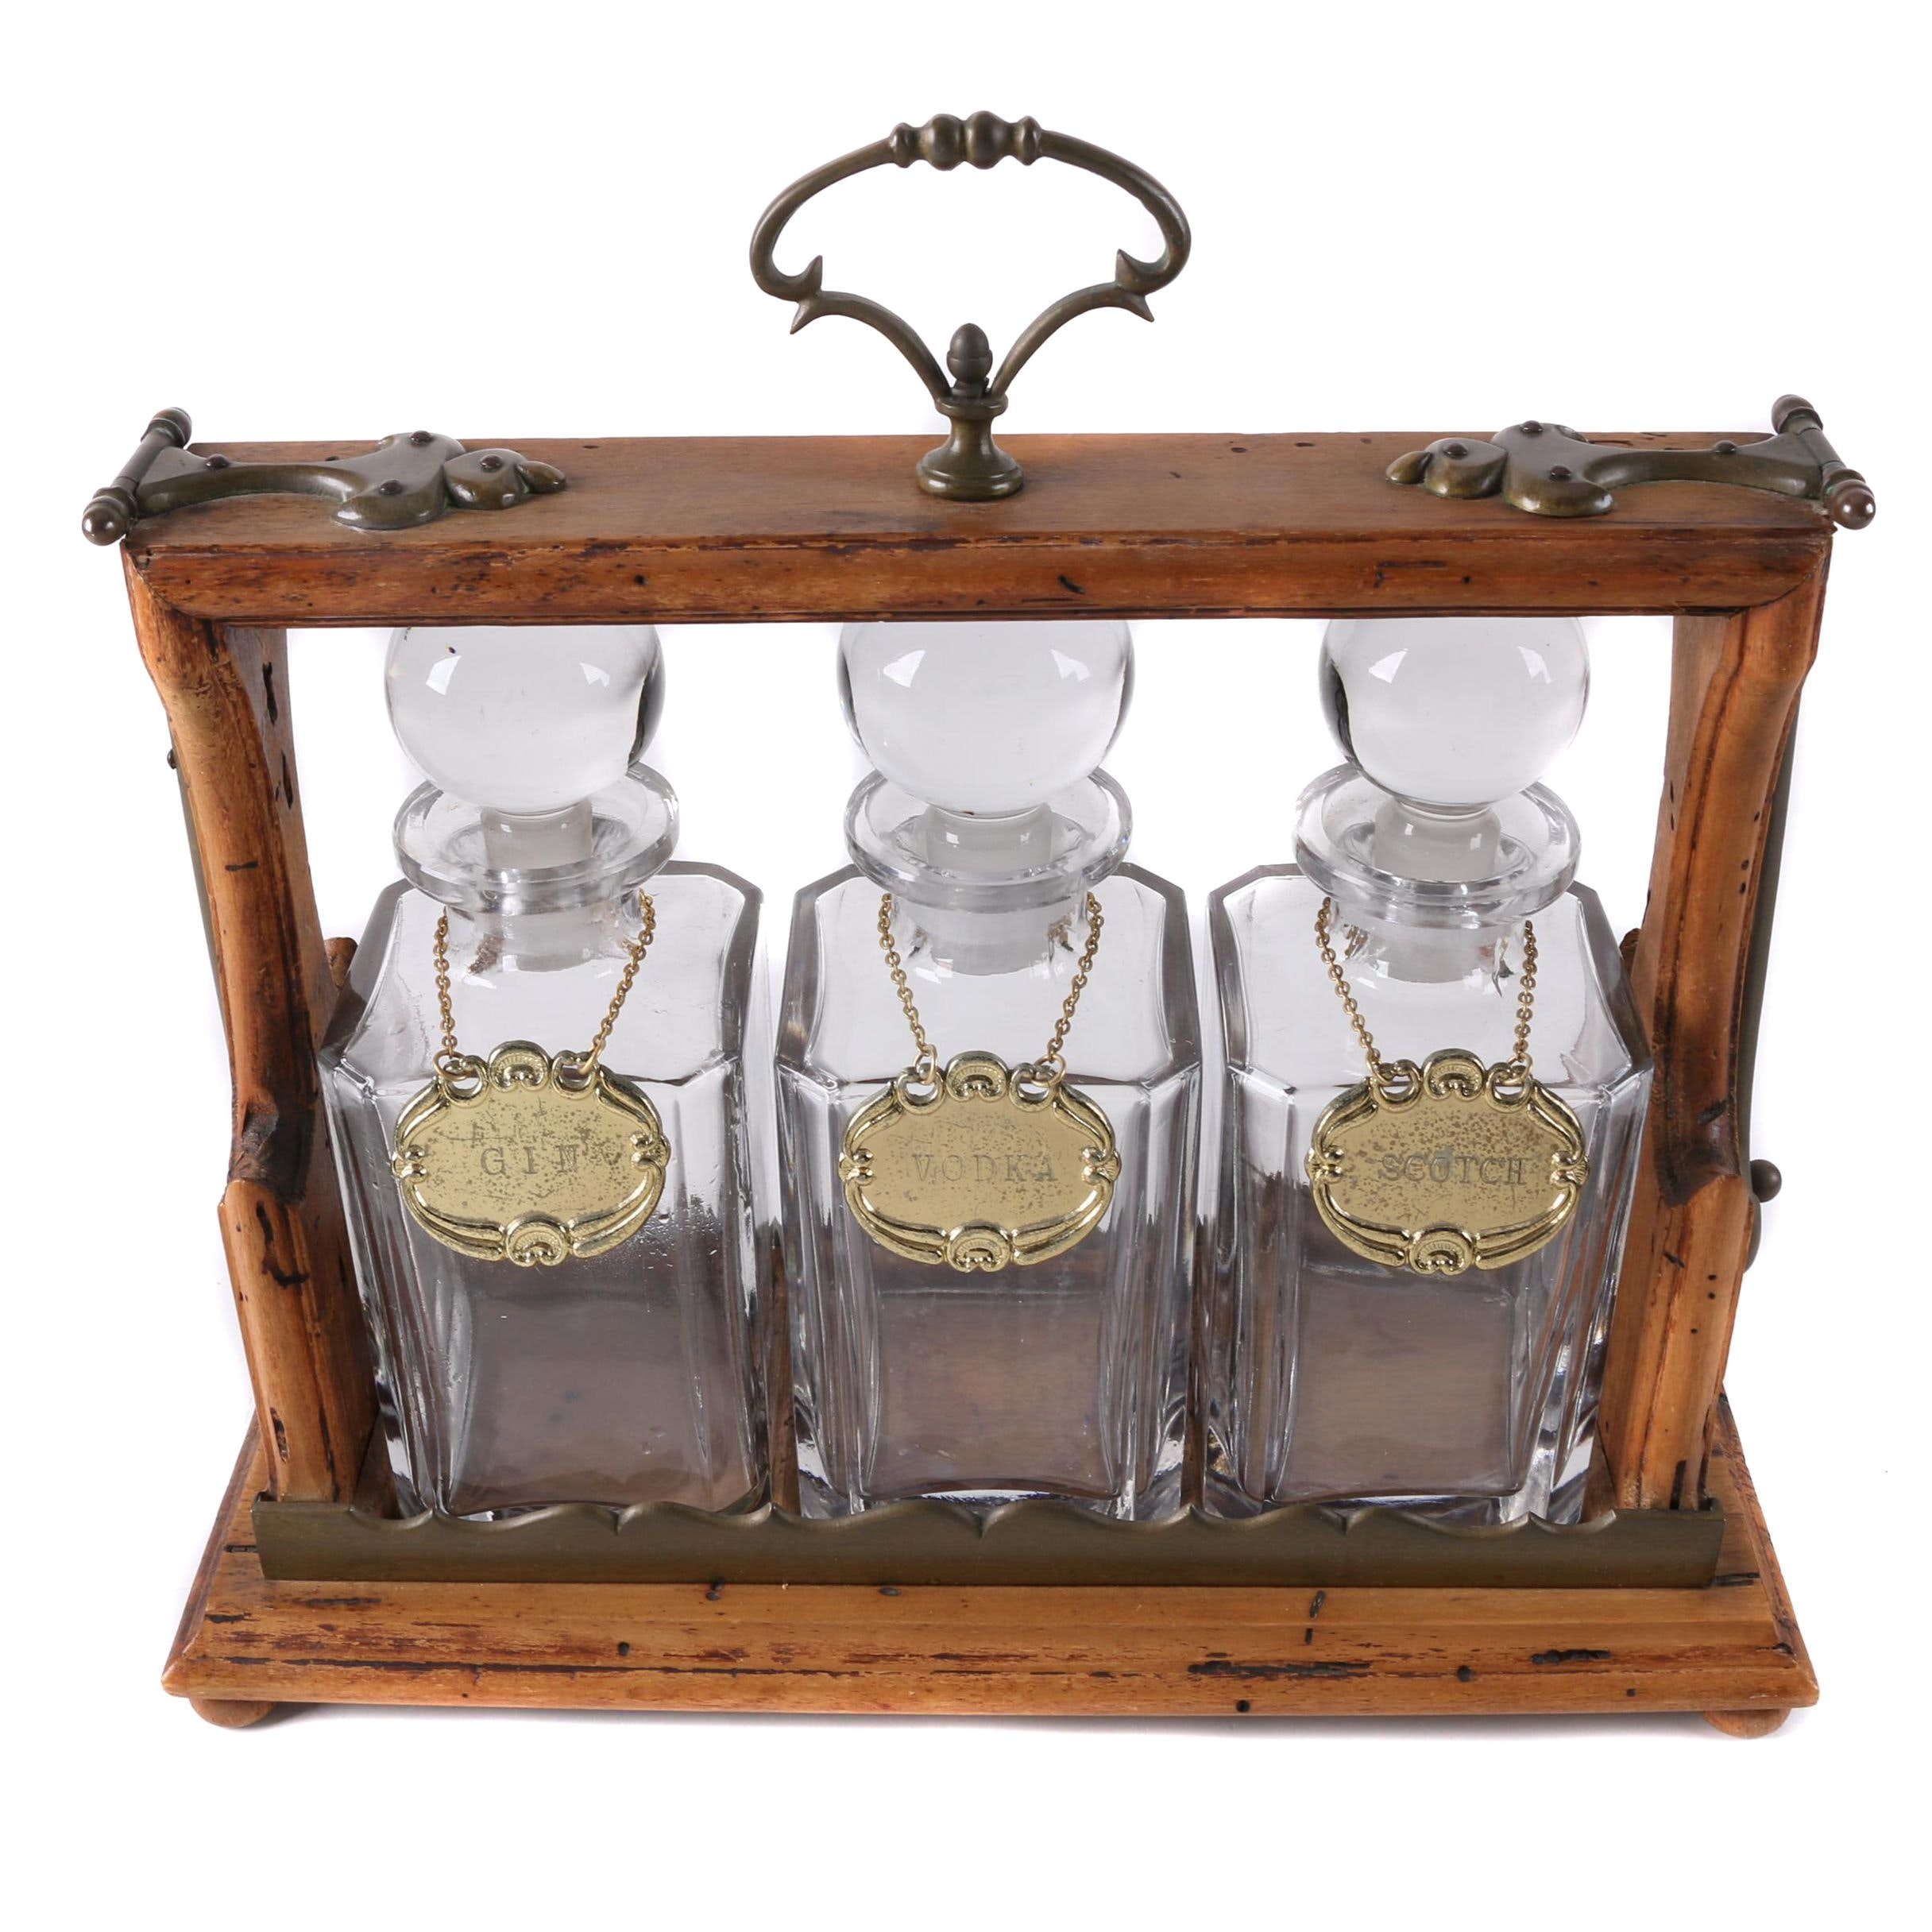 Vintage Wood Tantalus with Glass Decanters